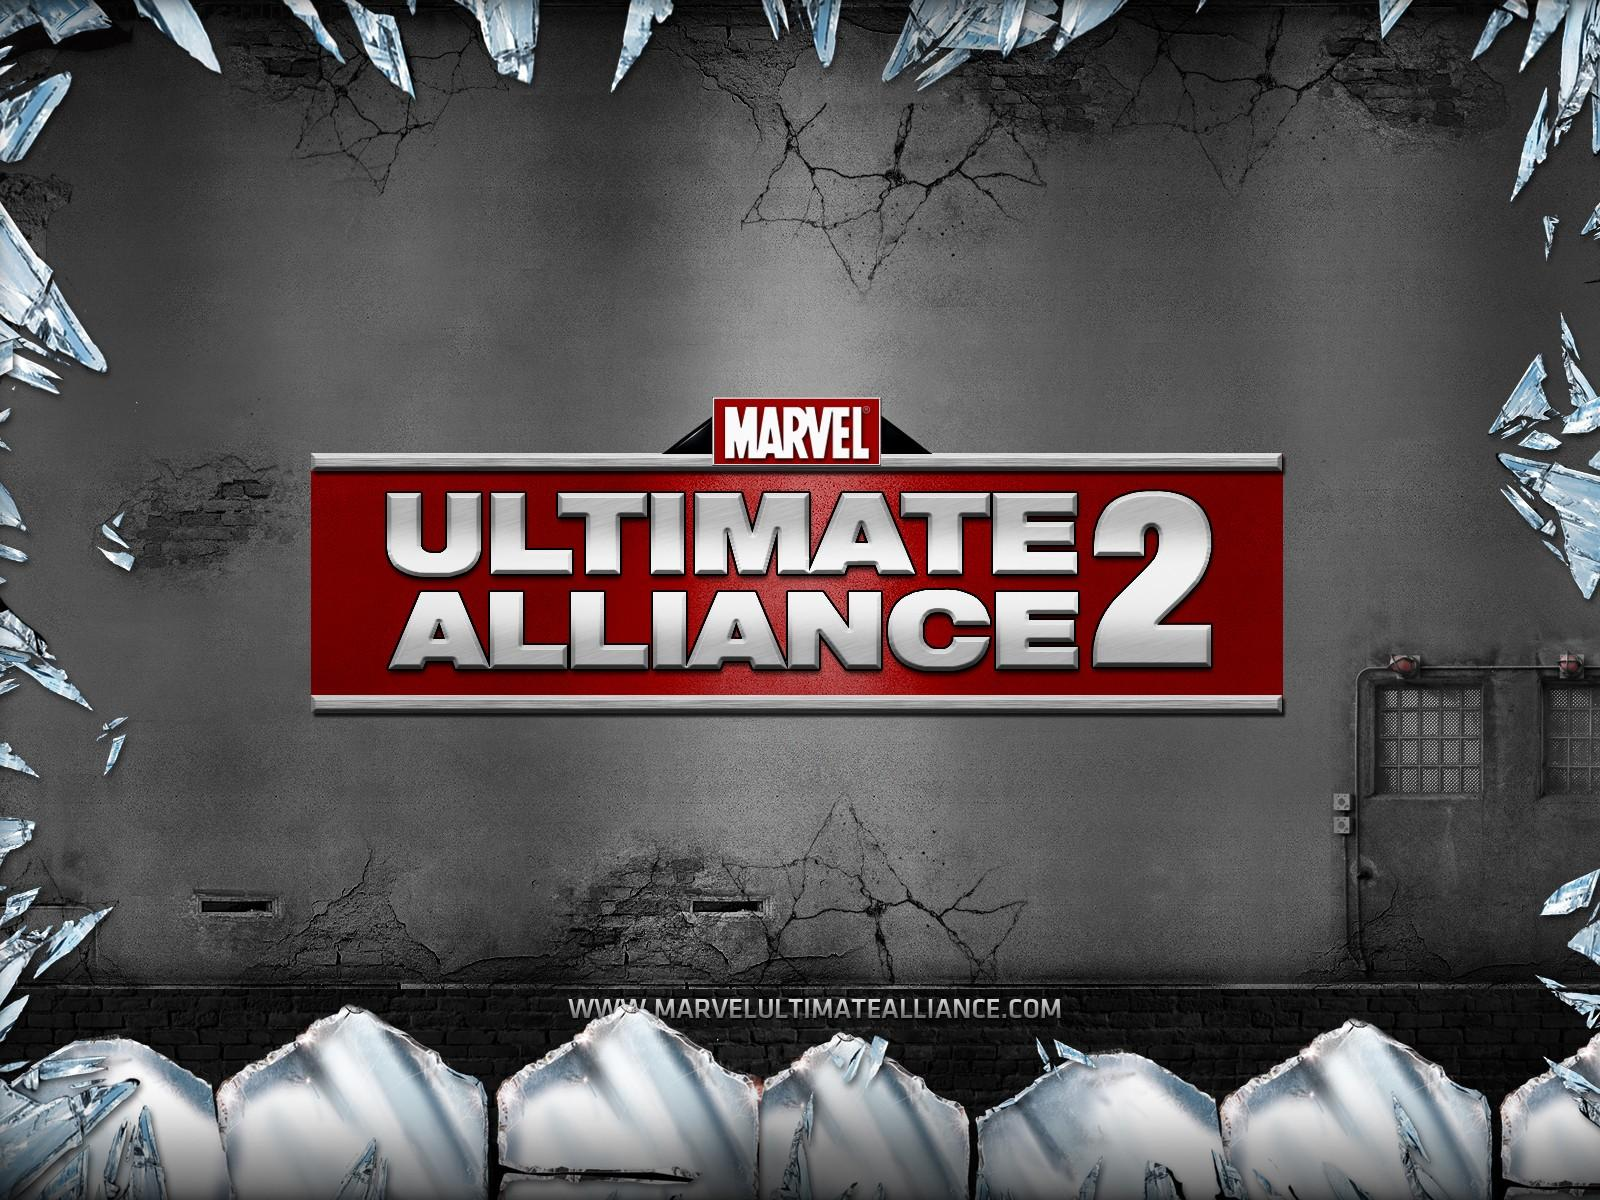 ���� Ultimate Alliance 2 ���� 1600x1200